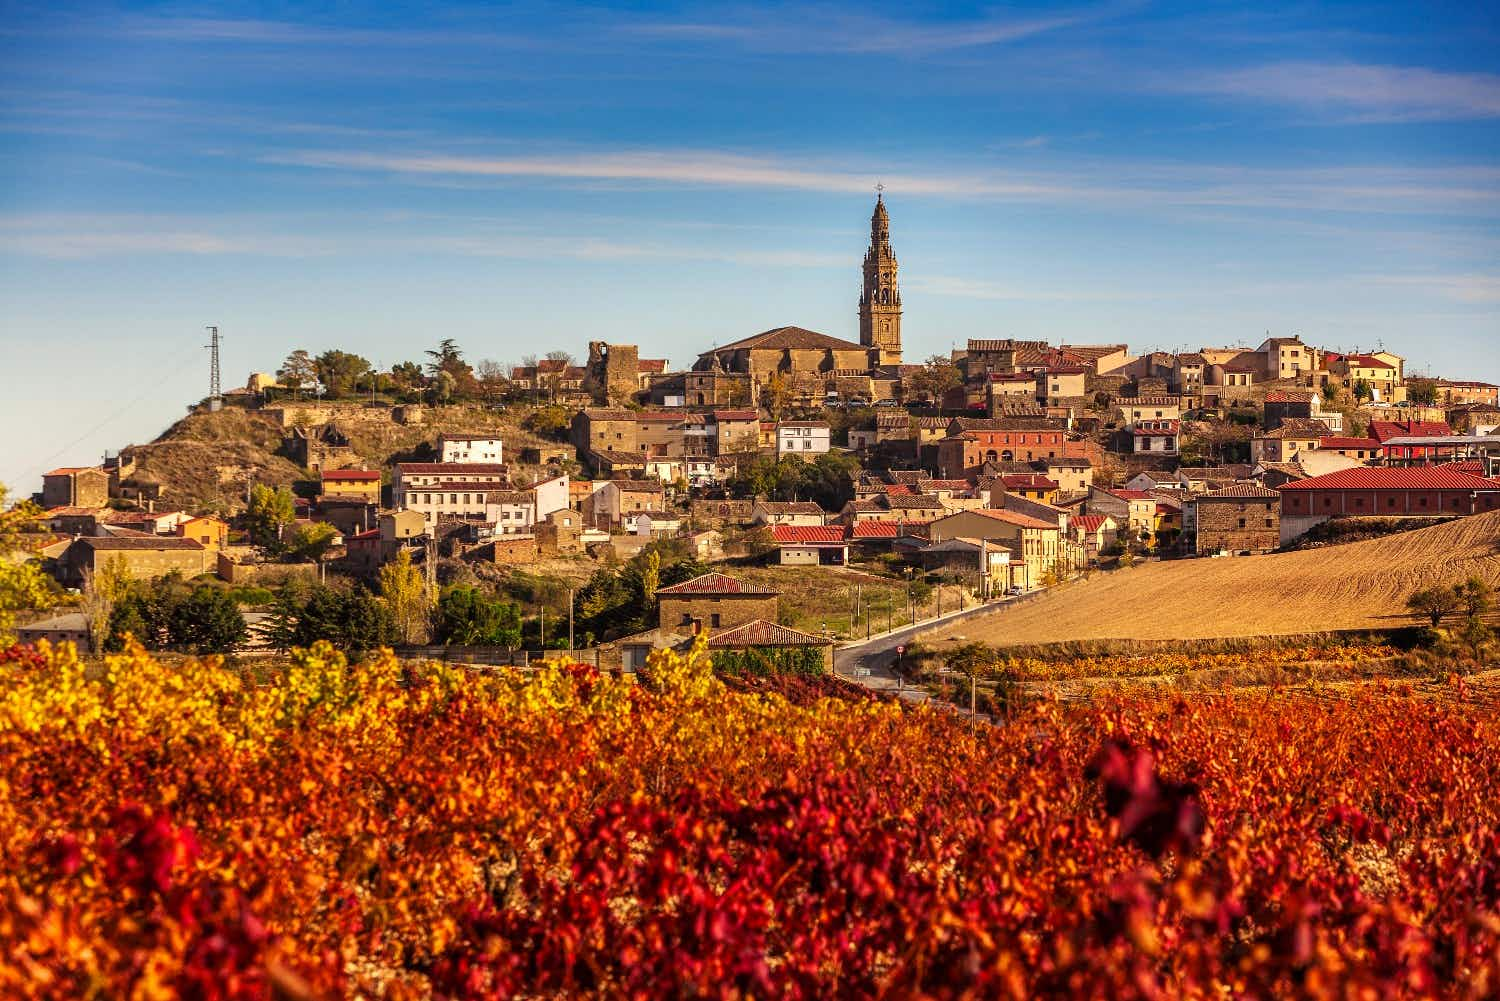 These 11 places have joined the list of the most beautiful villages in Spain